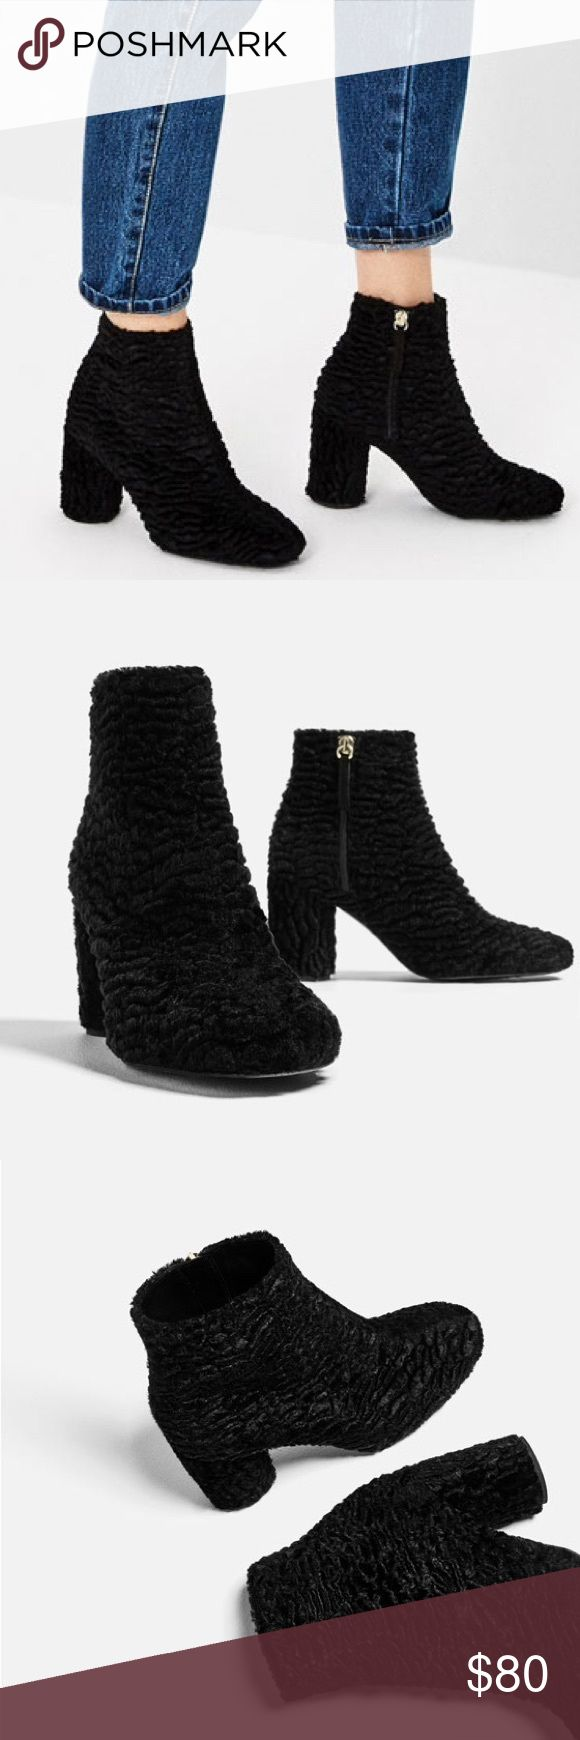 """ZARA FAUX FUR ANKLE BOOTS New with tags, no box. Size 37/6.5. Black high heel ankle boots. Faux fur finish detail, rounded toe, size zip closure. Lined rounded heel. Heel height: 3.2"""". Zara Shoes Ankle Boots & Booties"""